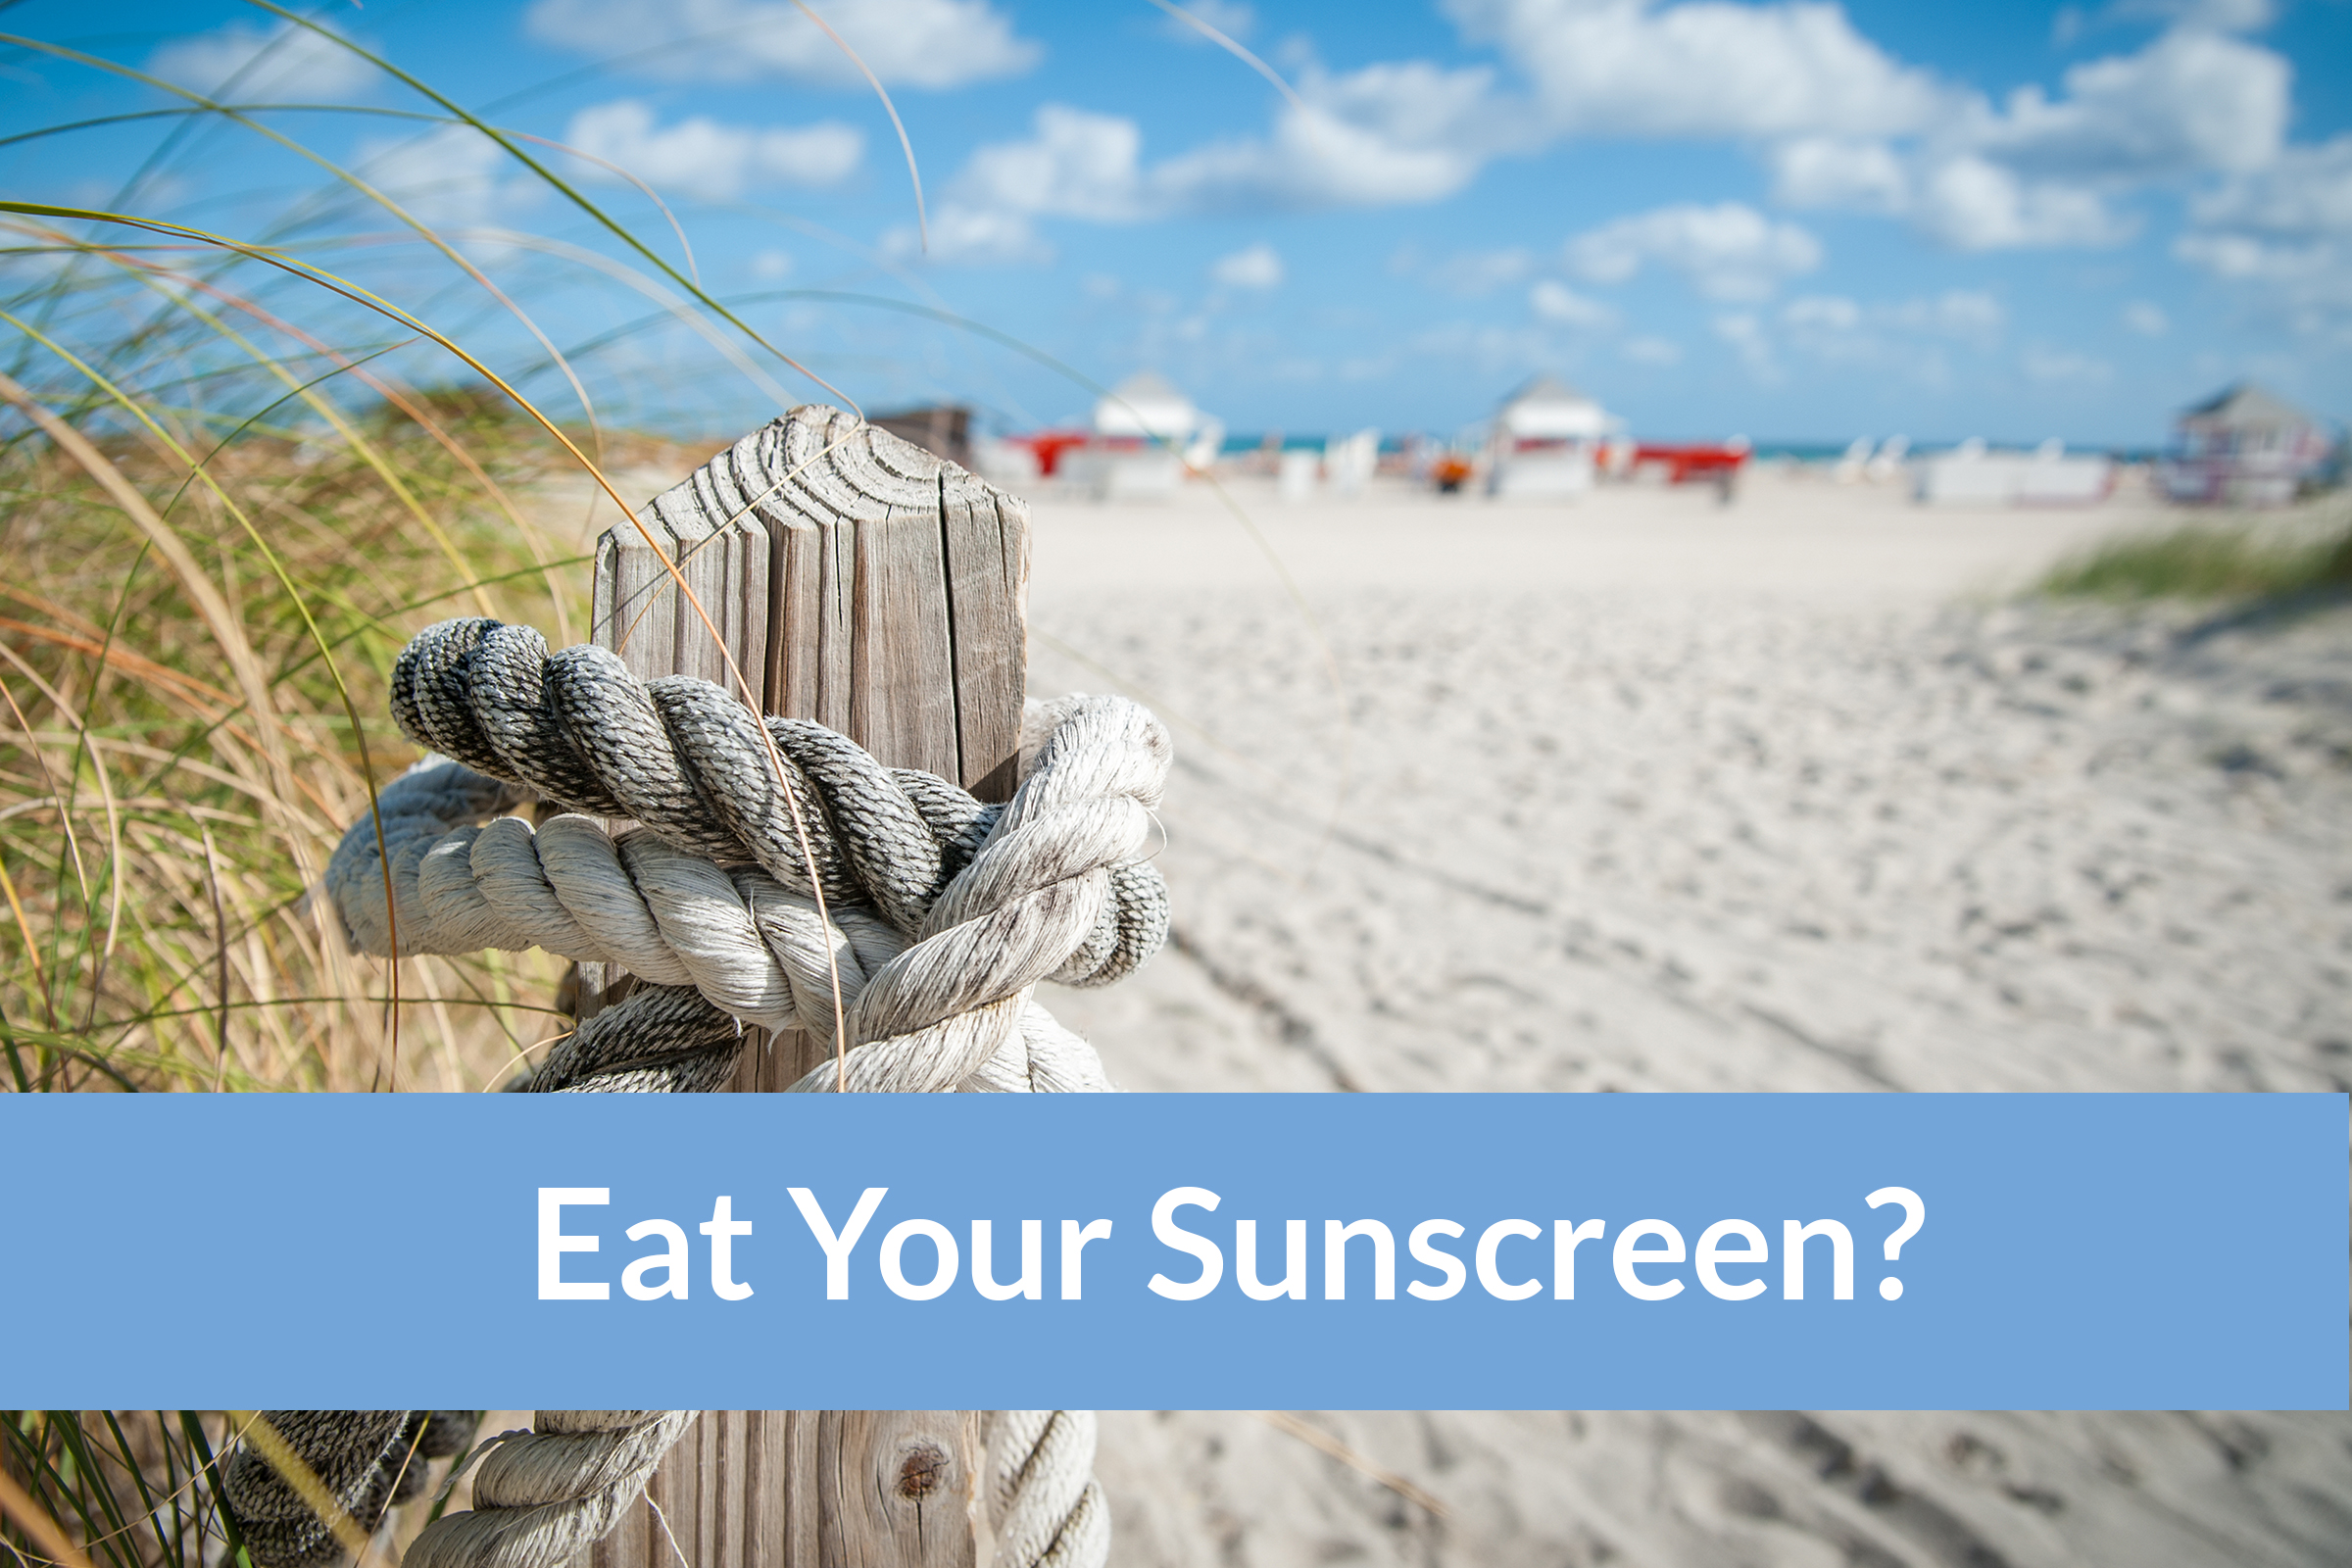 Eat Your Sunscreen?